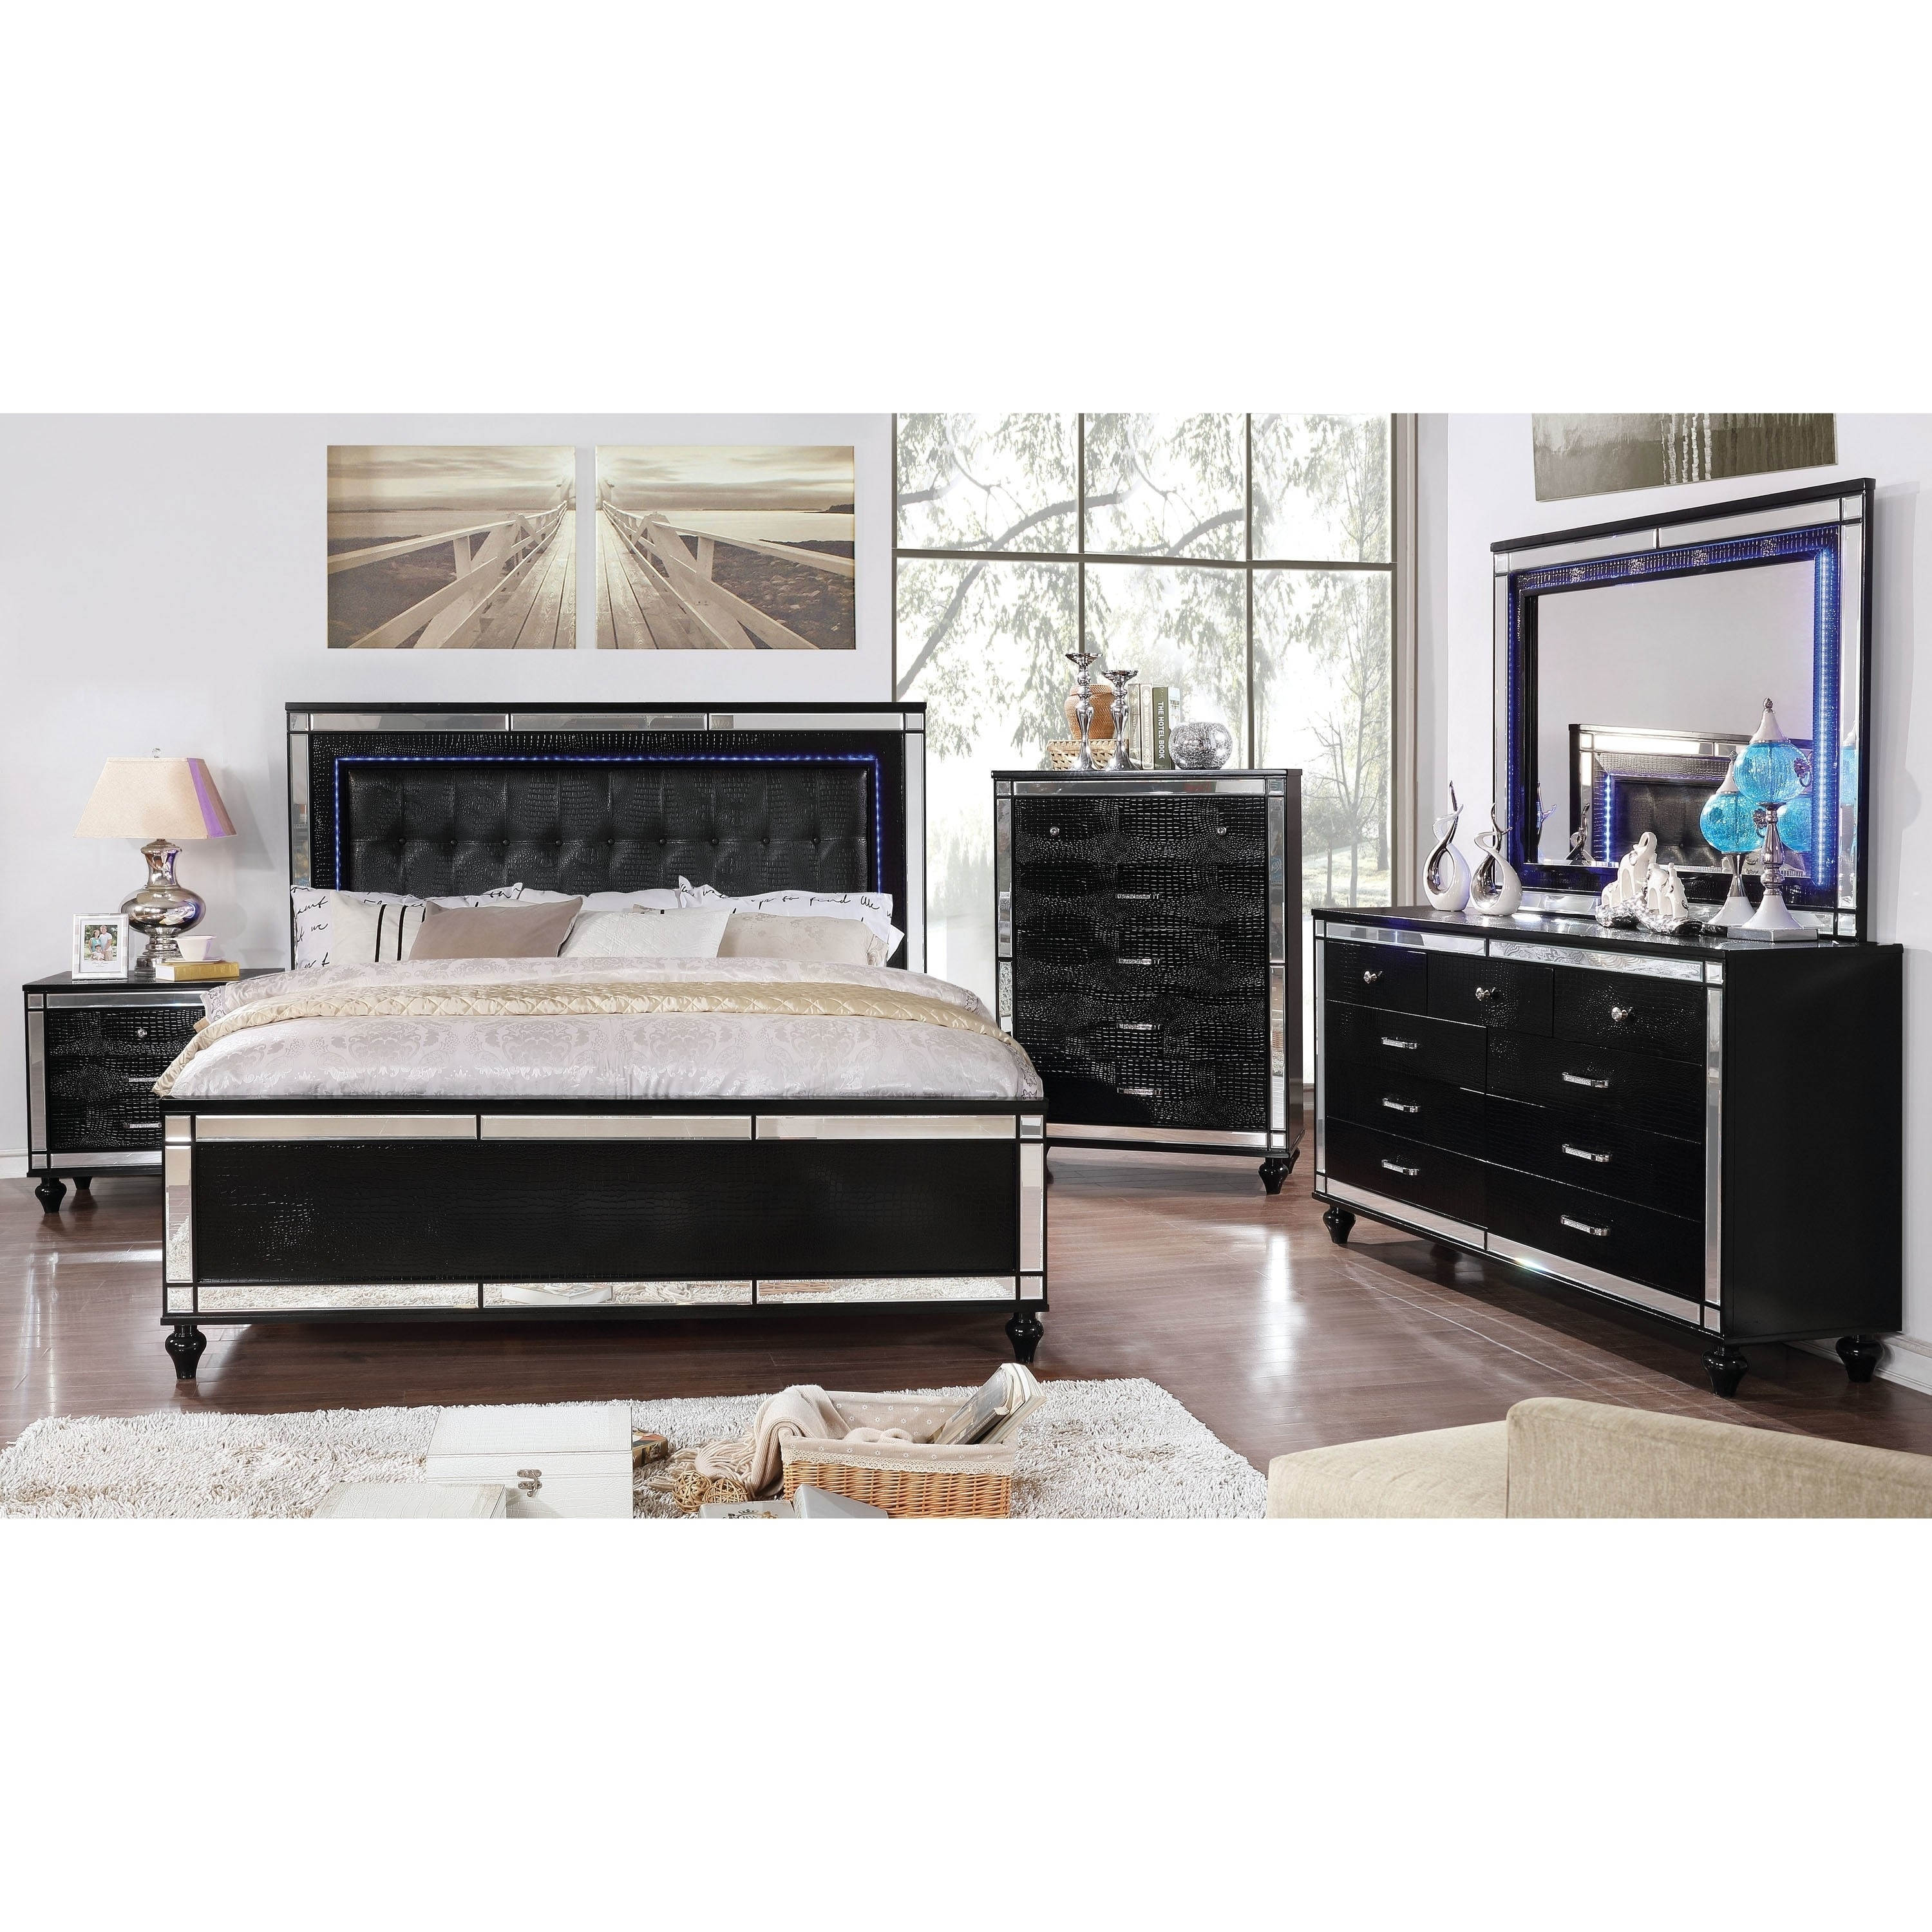 7af8c0ed2f09 Shop Petra Contemporary Tufted Bed with LED Trim by FOA - Ships To Canada -  Overstock - 20192640